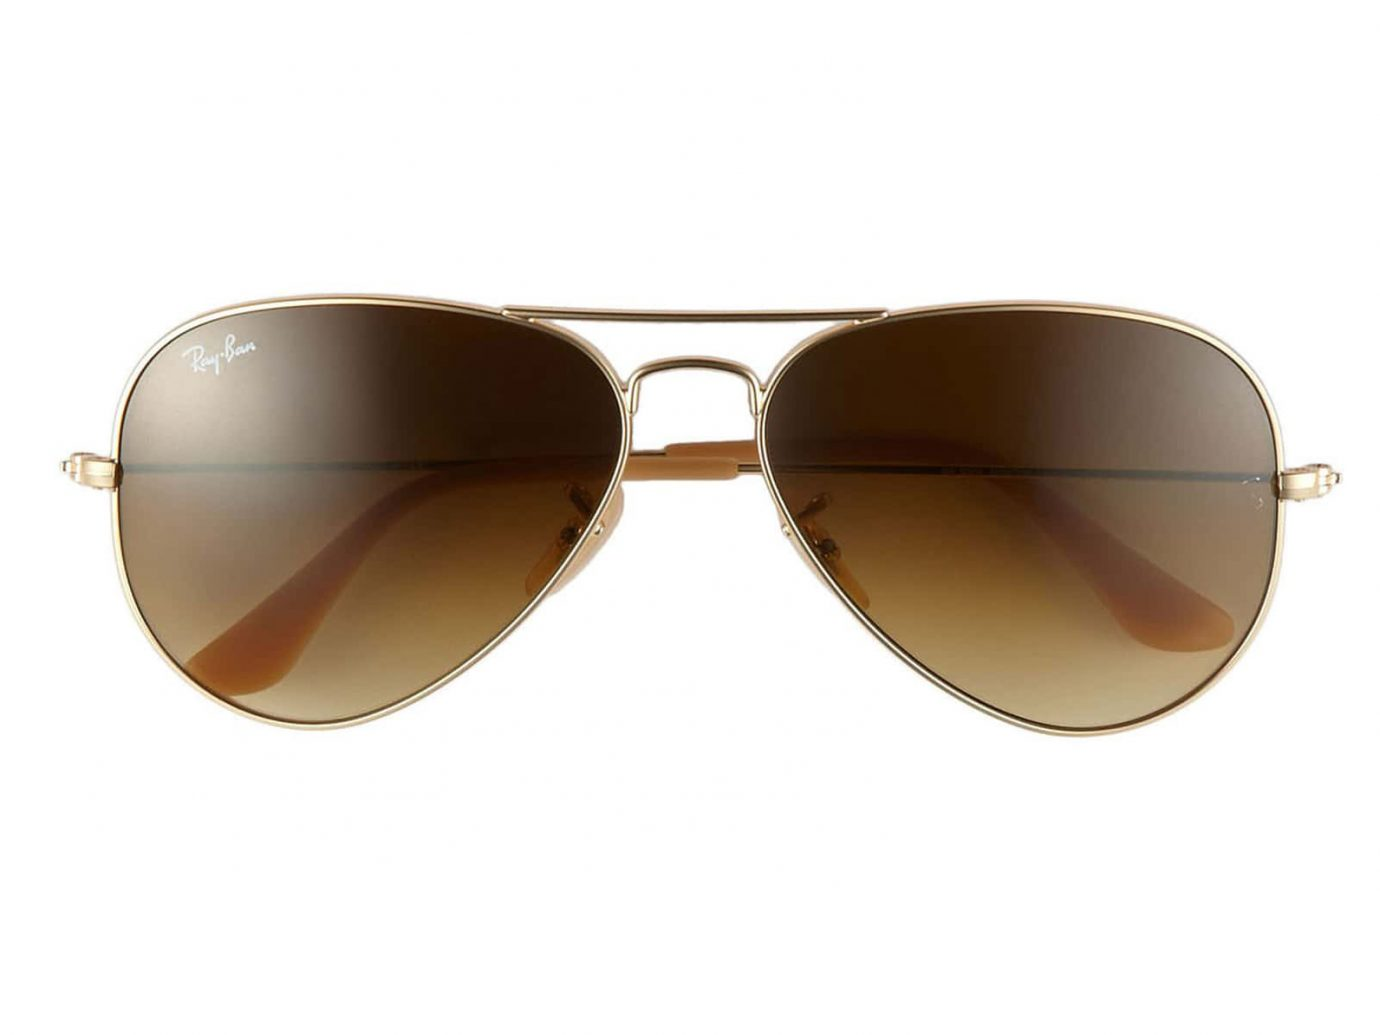 Standard Original 58mm Aviator Sunglasses RAY-BAN